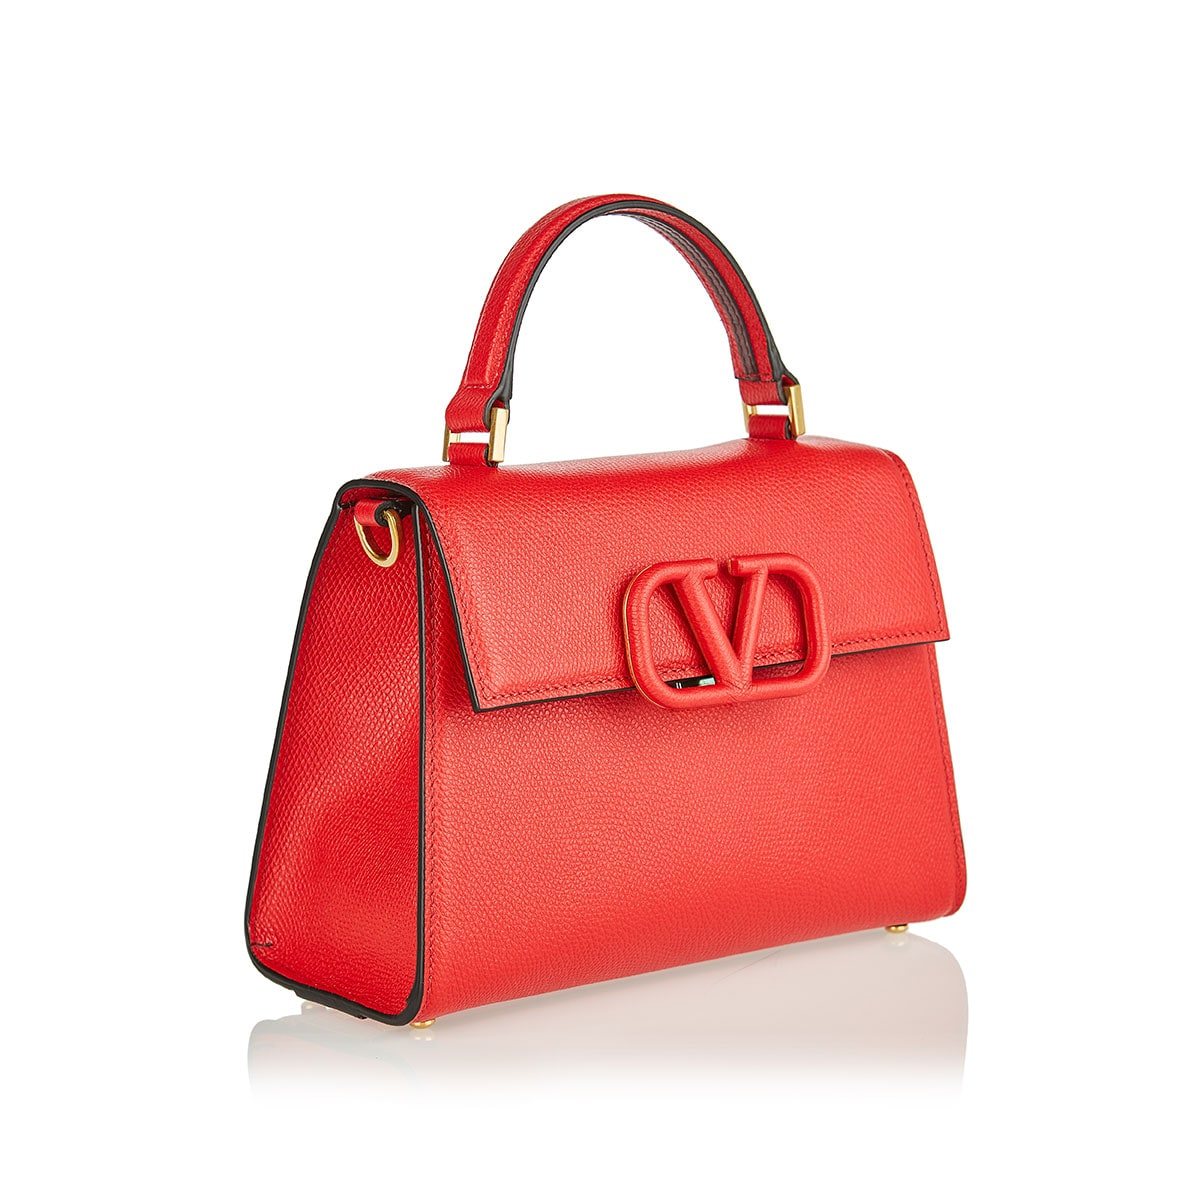 VSLING small leather top-handle bag